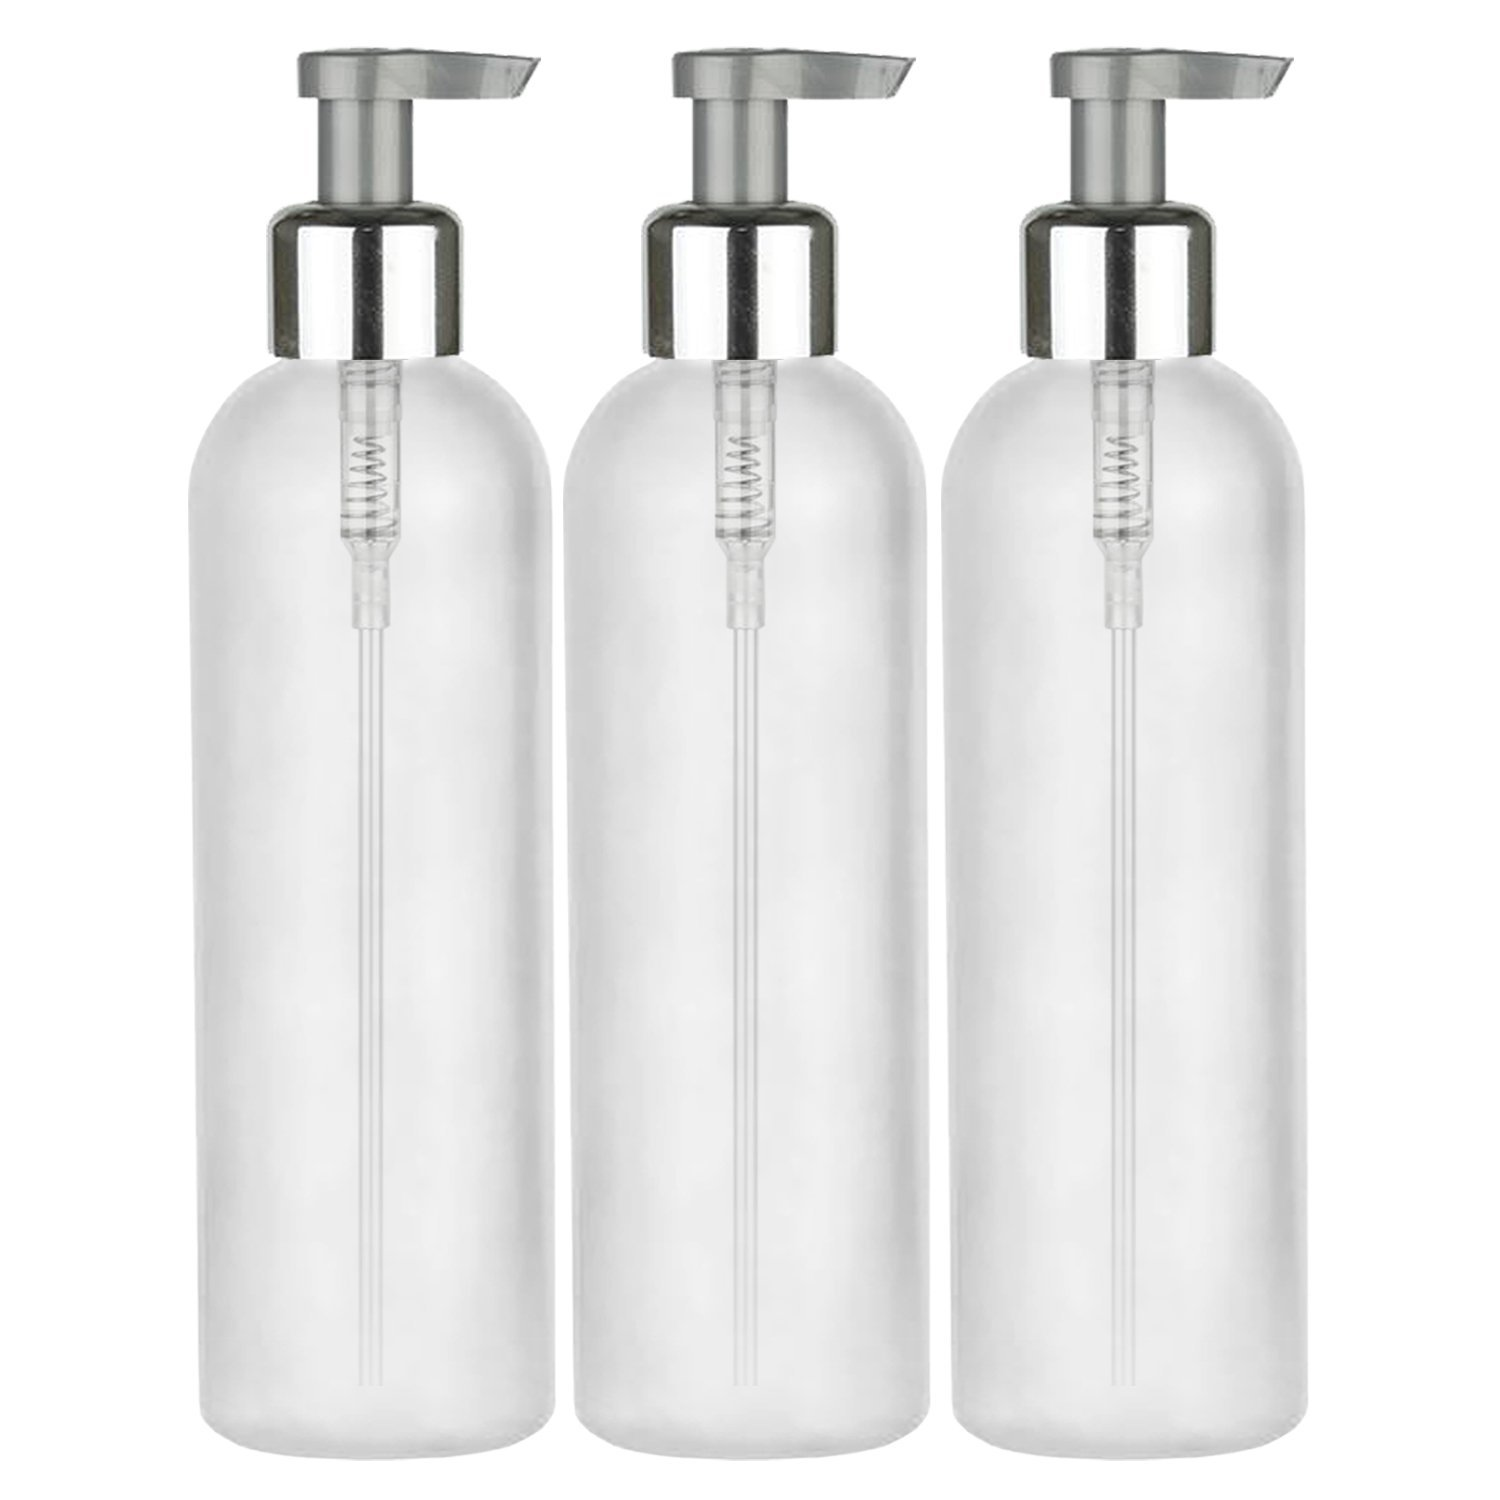 MoYo Natural Labs 4 oz Pump Dispenser, Refillable Empty Soap and Lotion Pump Bottles with Silver Locking Cap, BPA Free HDPE Plastic Containers for Essential Oils/Liquids (Pack of 3, Translucent White)